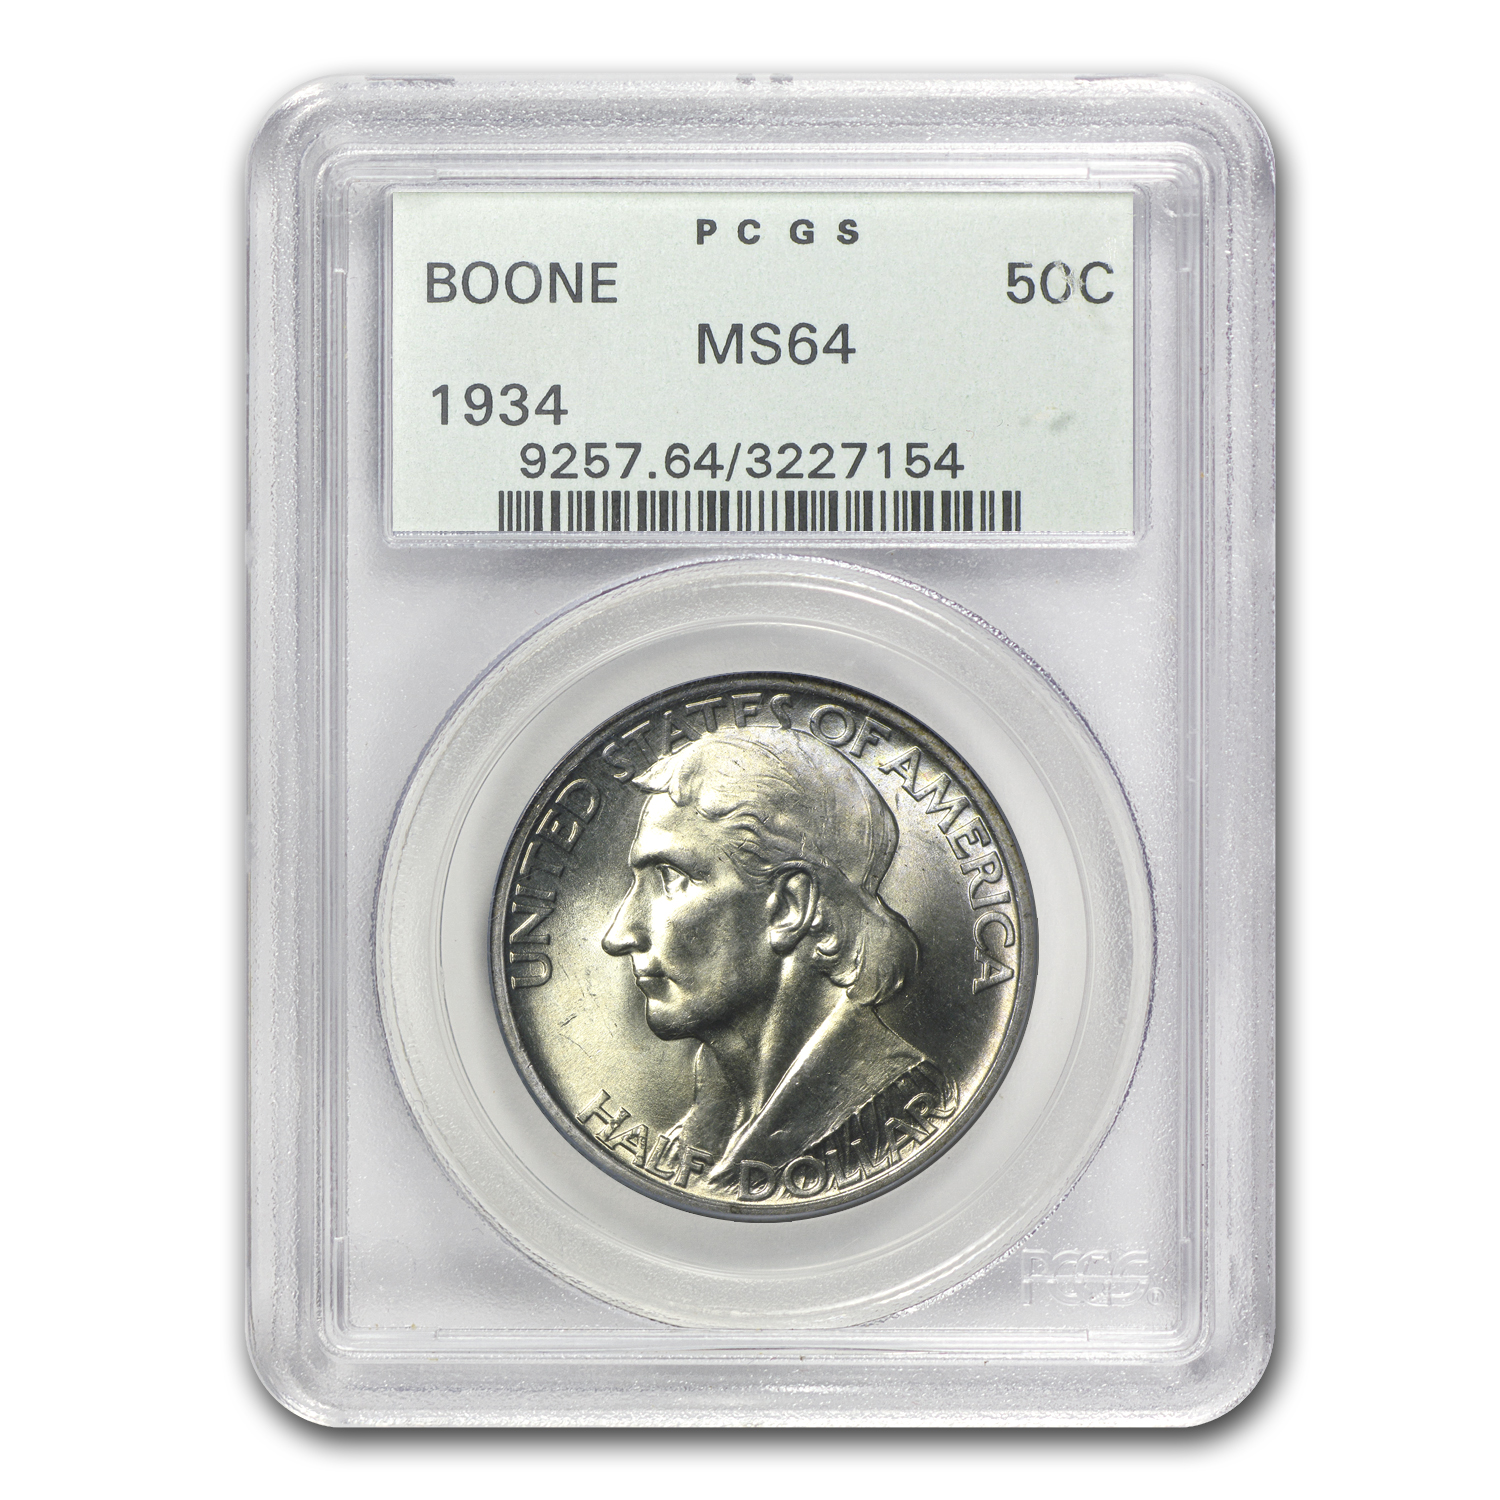 1934 Boone MS-64 PCGS